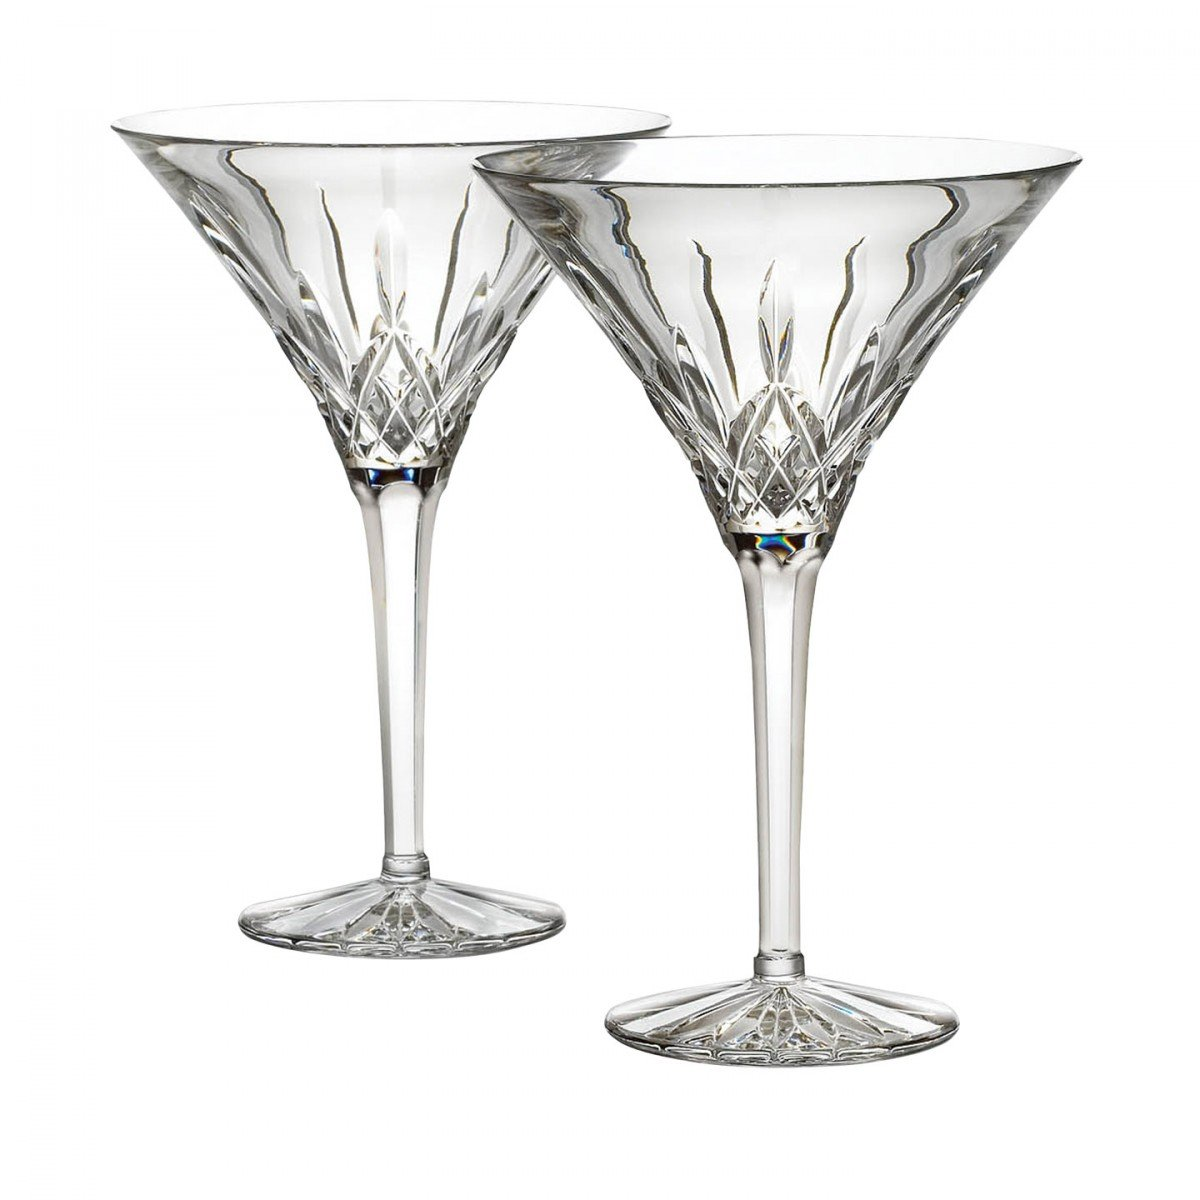 Waterford Crystal Lismore Tall Martini Glasses, Pair